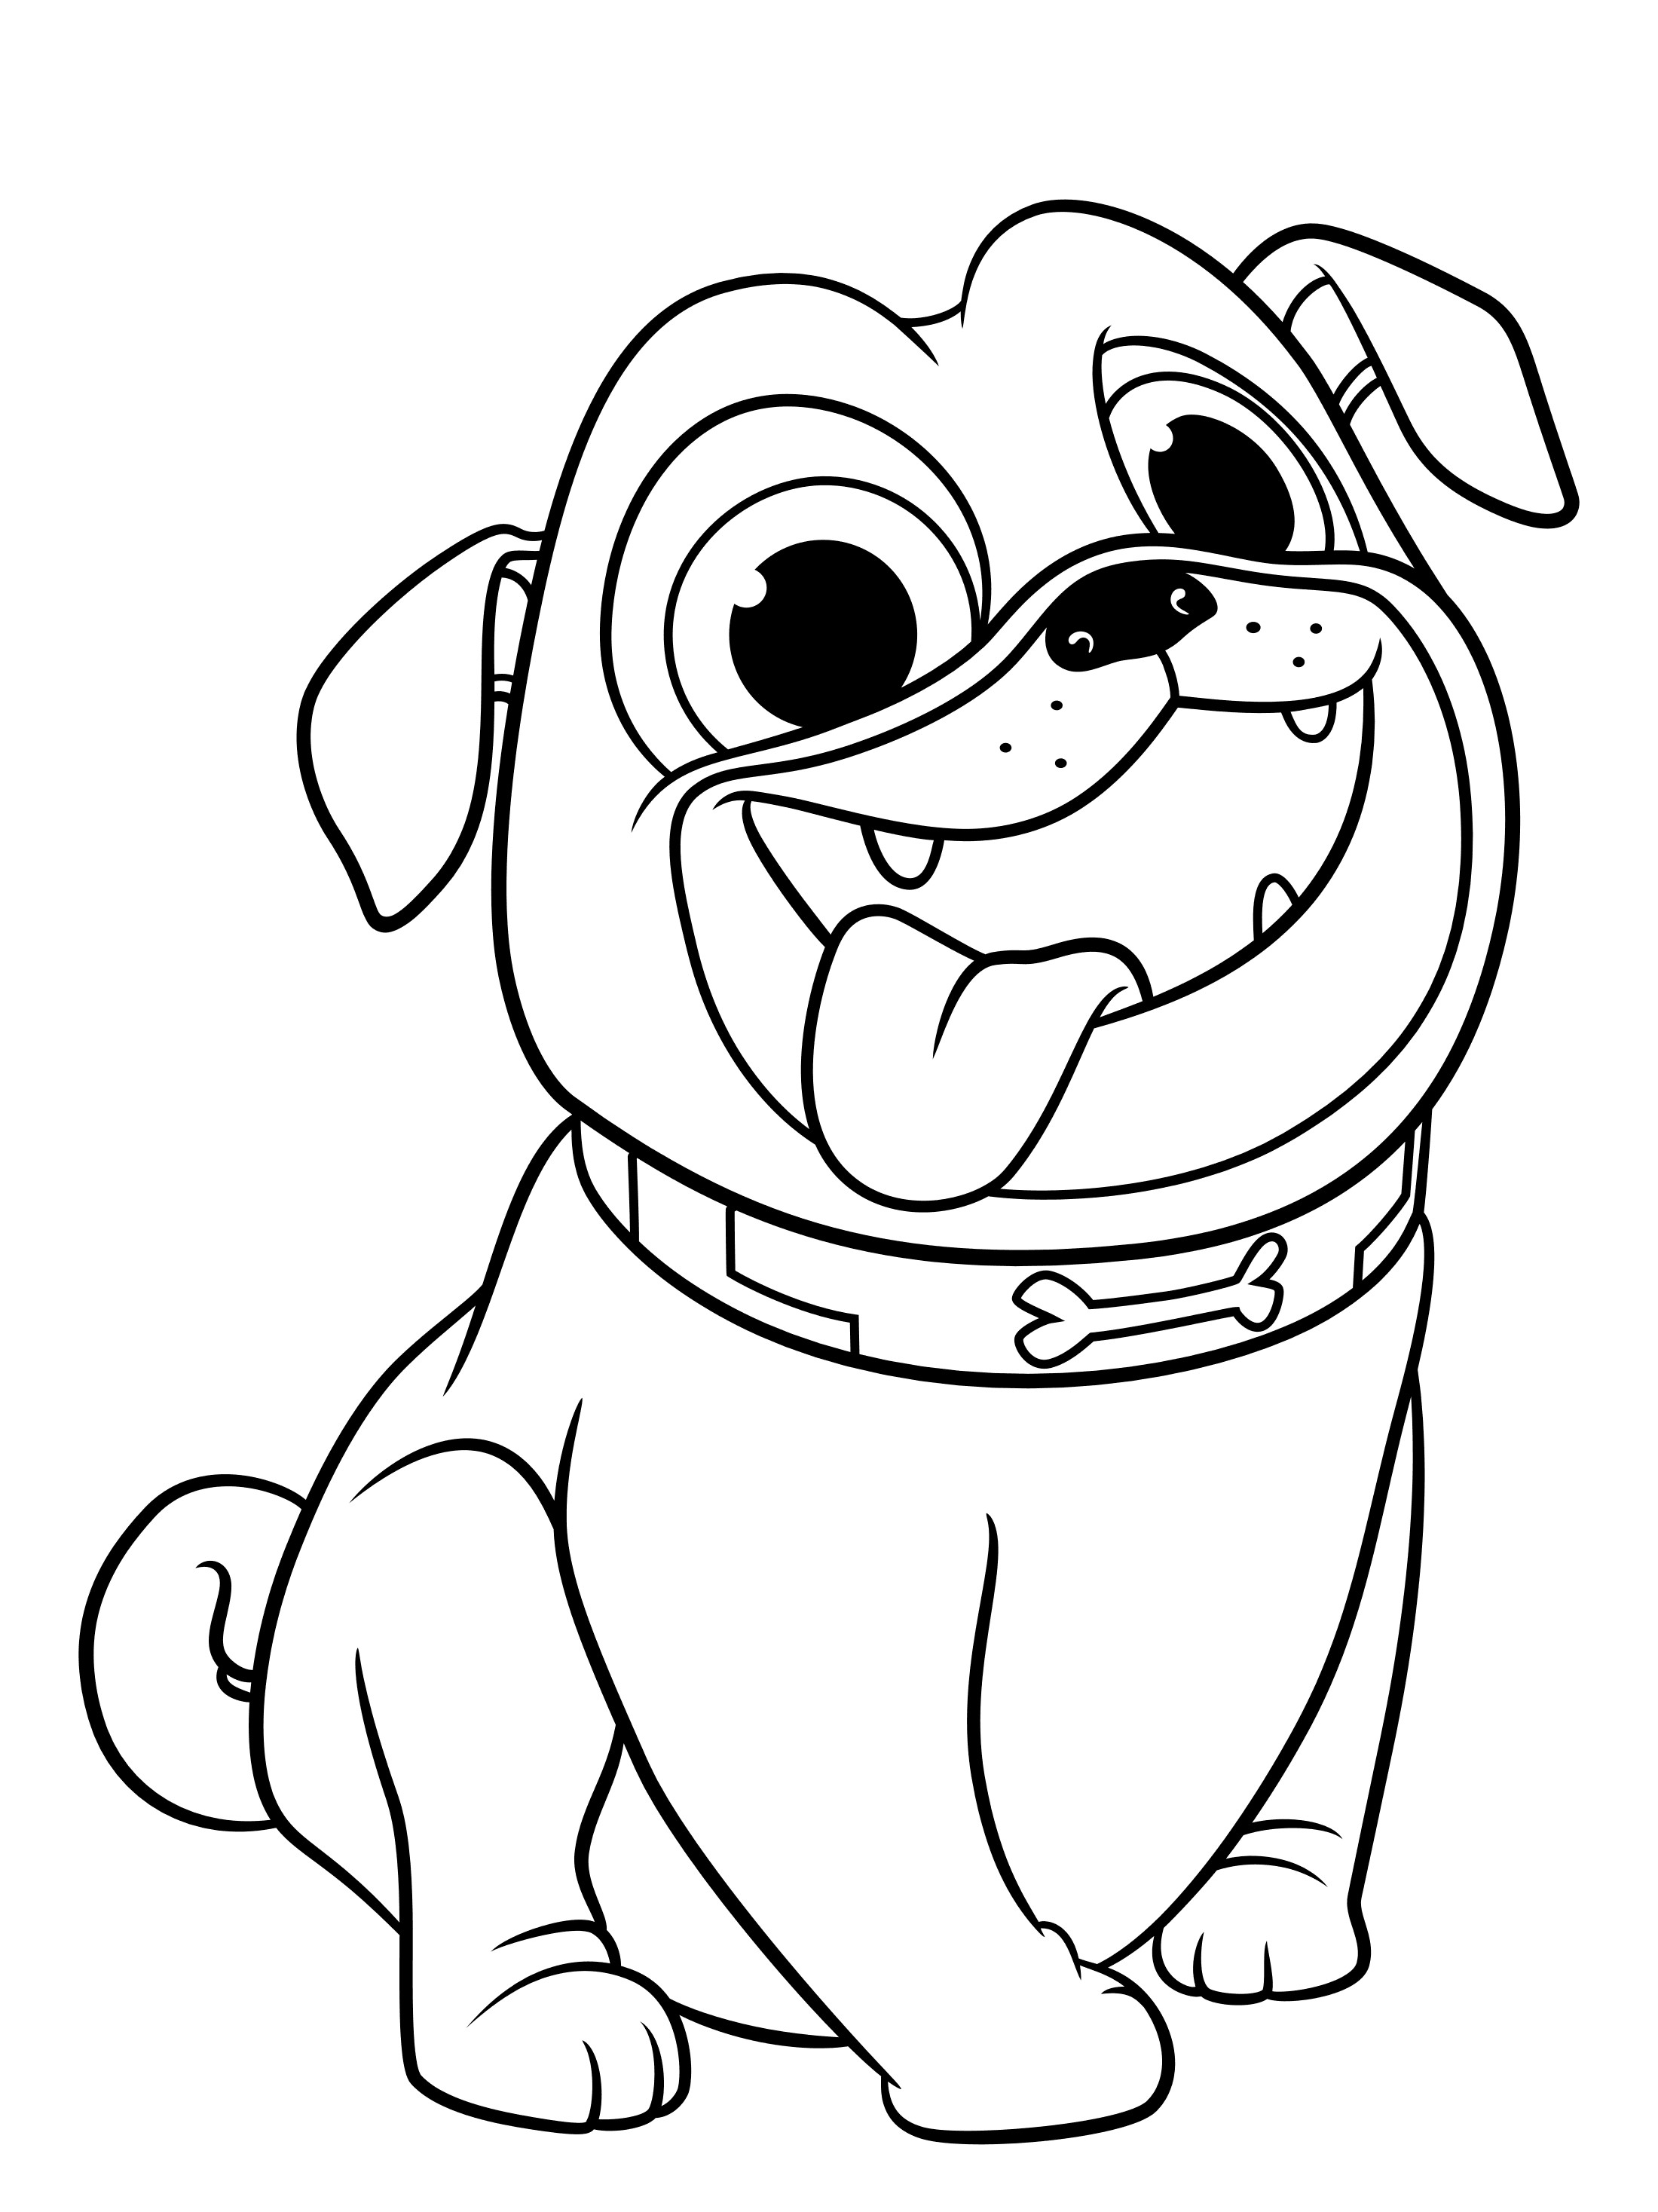 dog coloring pages free free printable puppies coloring pages for kids dog free coloring pages